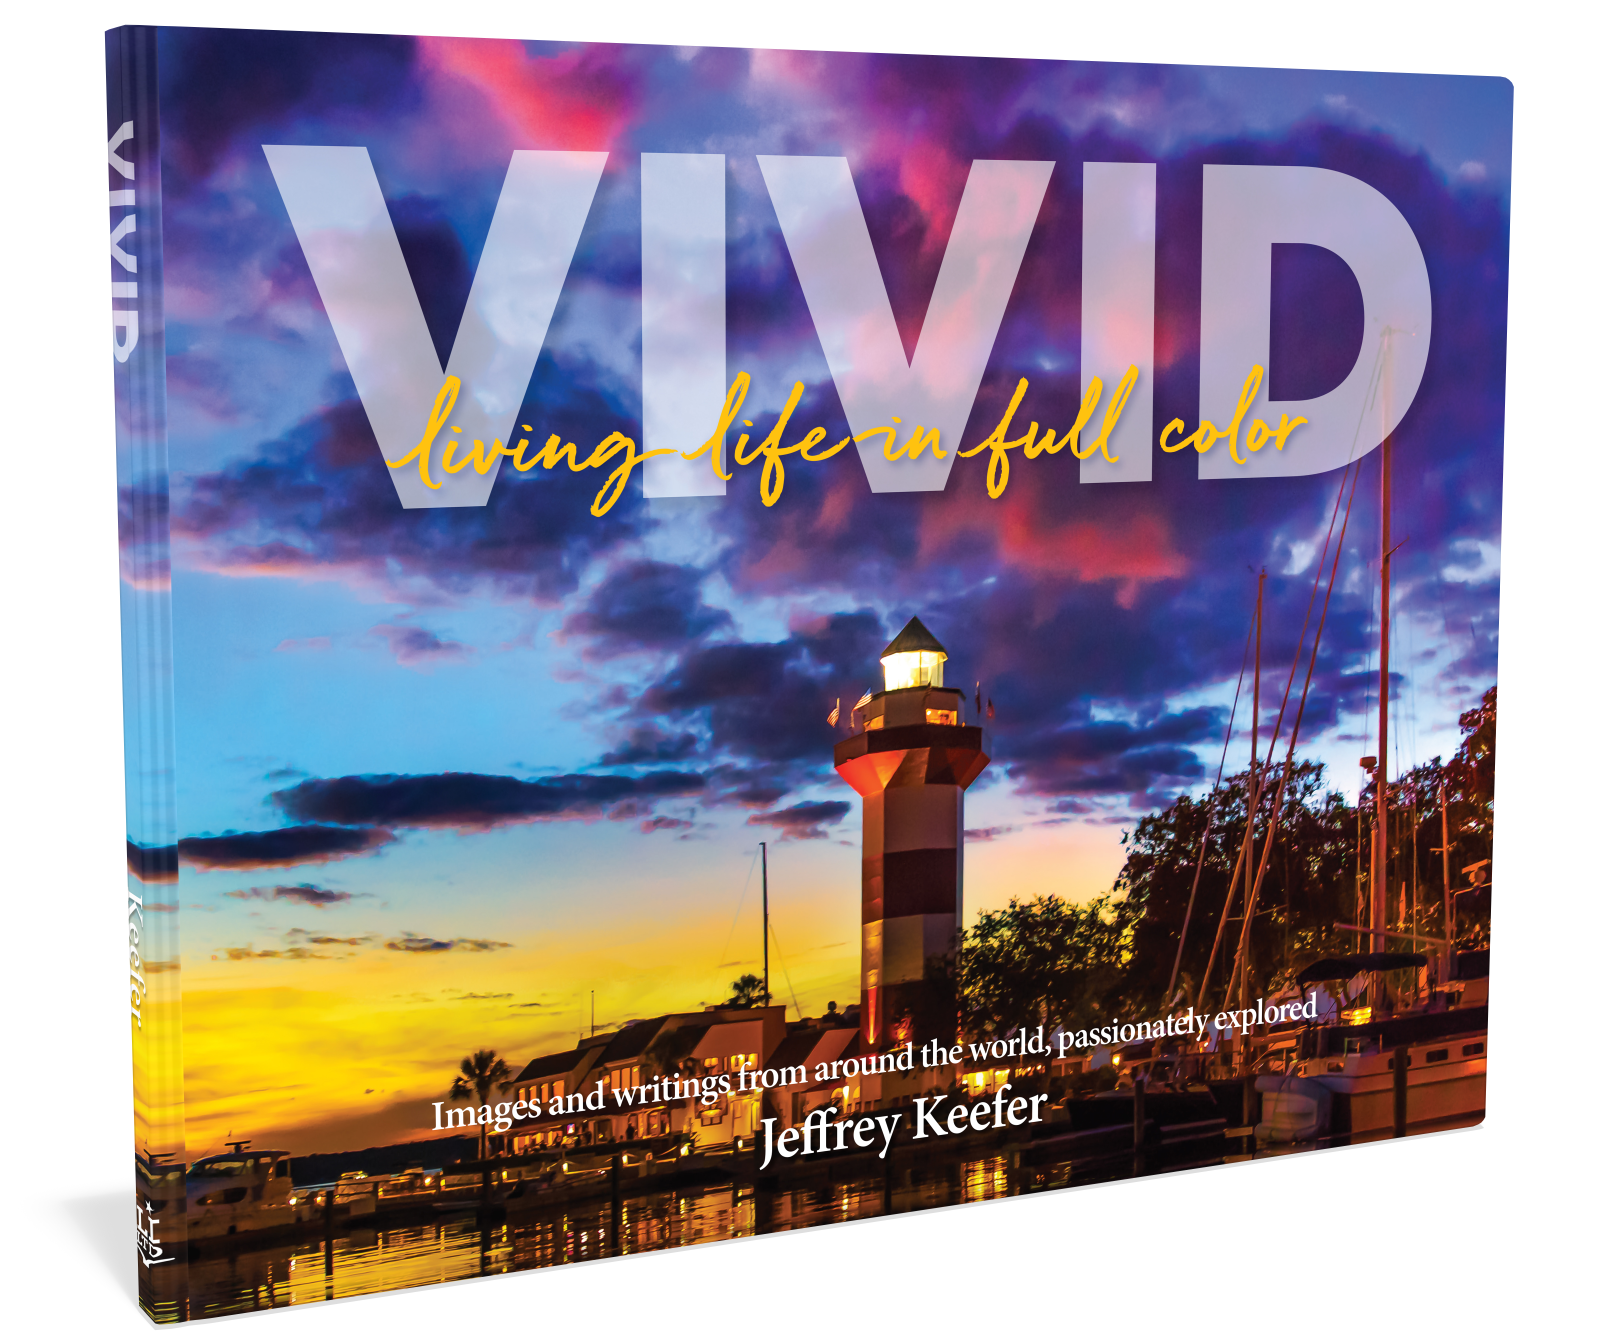 Vivid living life in full color photography gift book author jeffery keefer publisher lydia inglett Starbooks